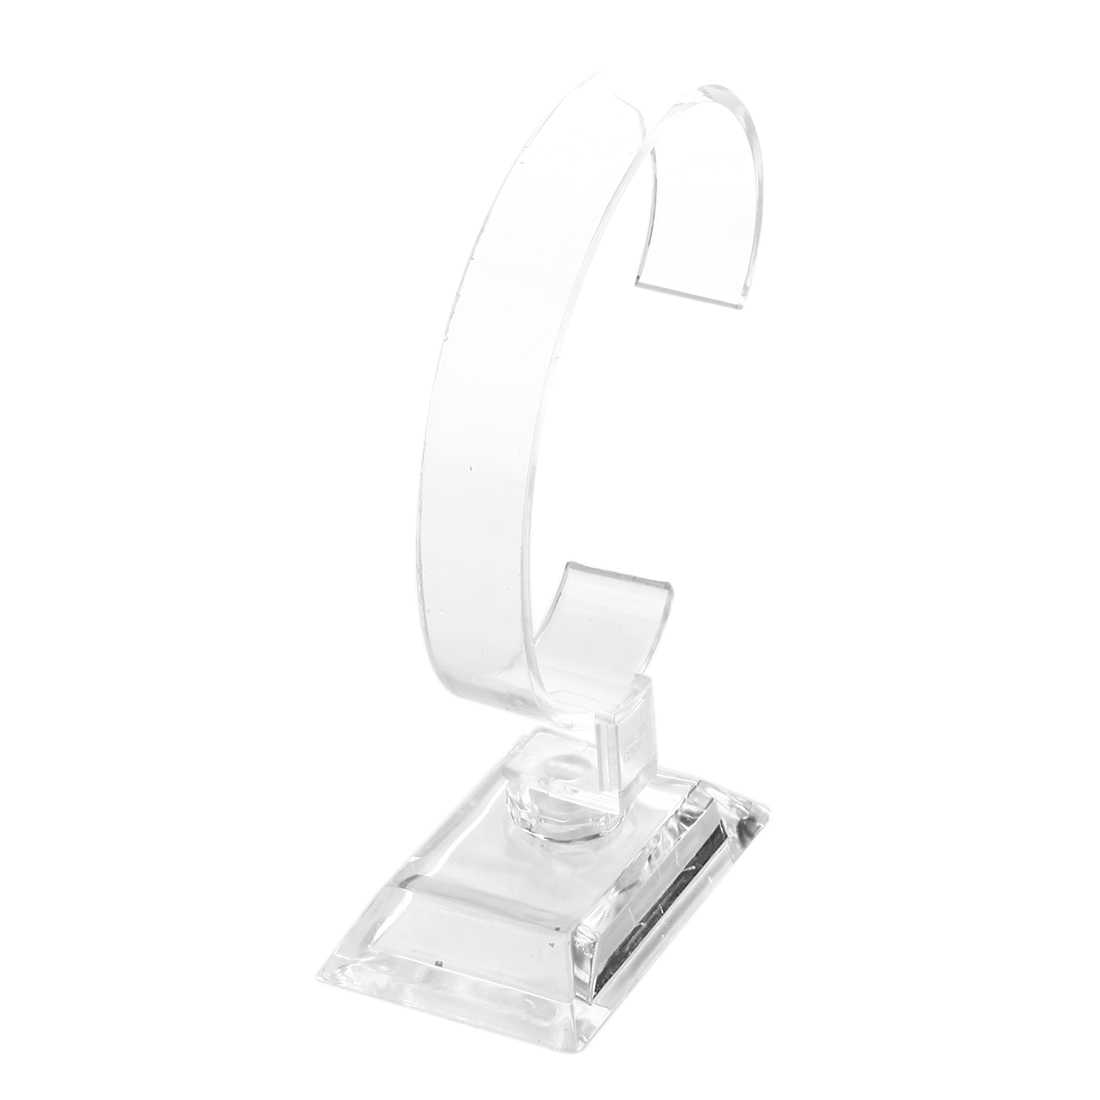 Watch stand watch holder carrier for watch